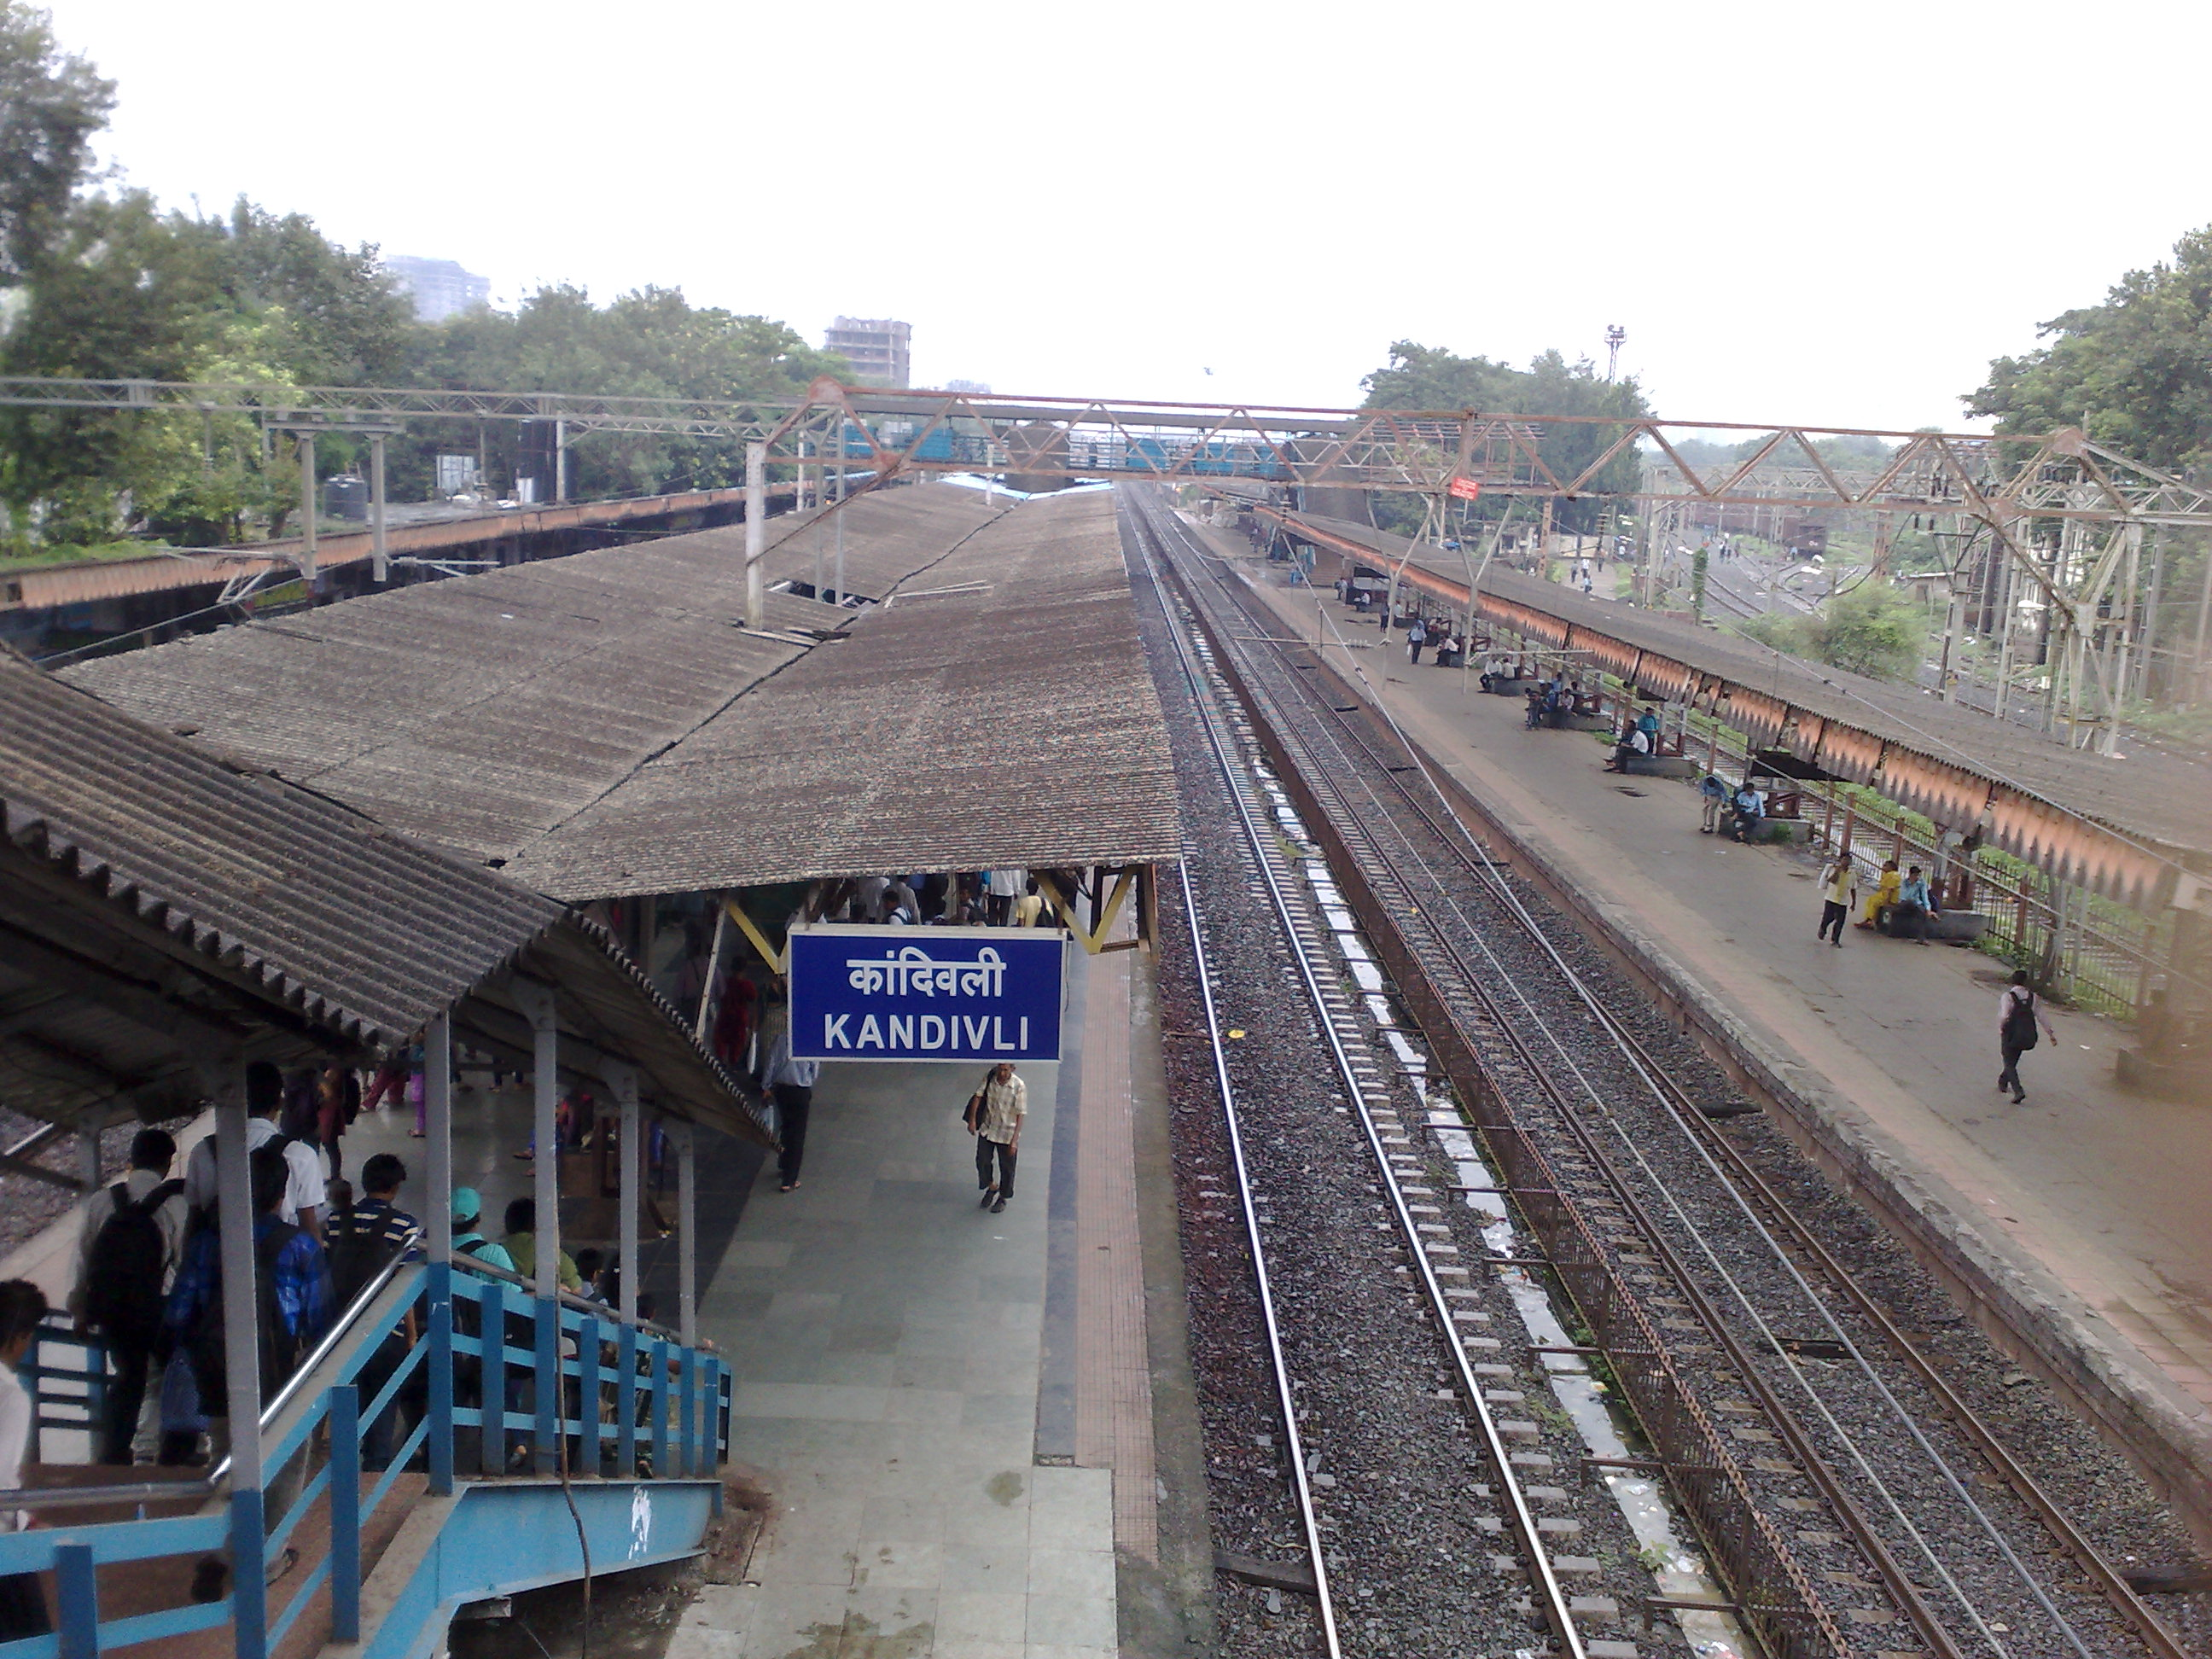 a visit to a railway station